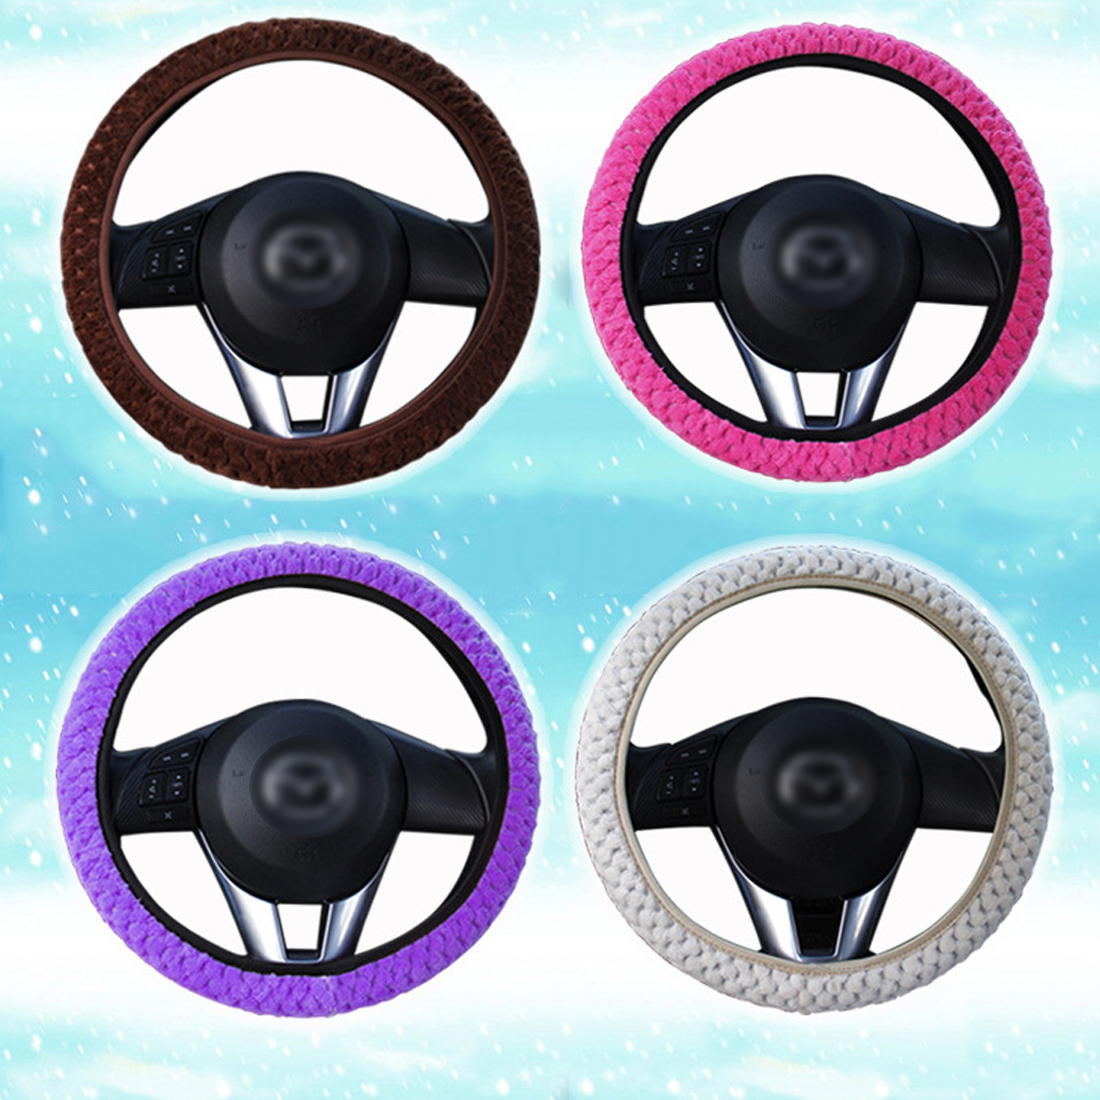 Winter Car Steering Wheel Cover//Universal Soft Warm Plush Covers for steering